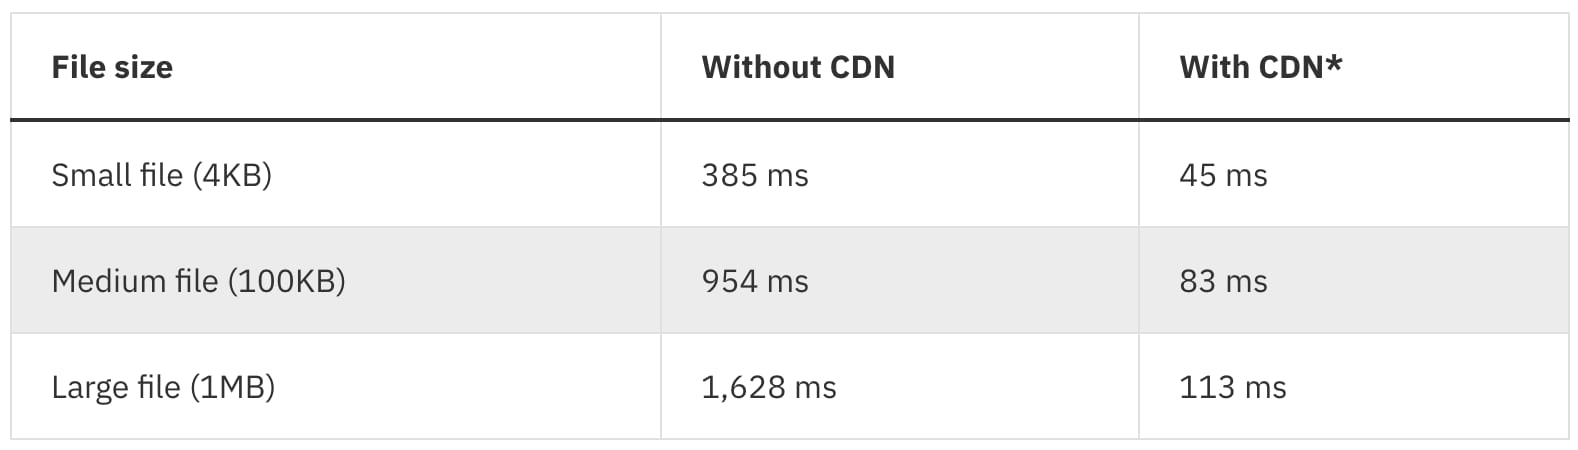 IBM Cloud CDN performed 8 to 14 times faster!